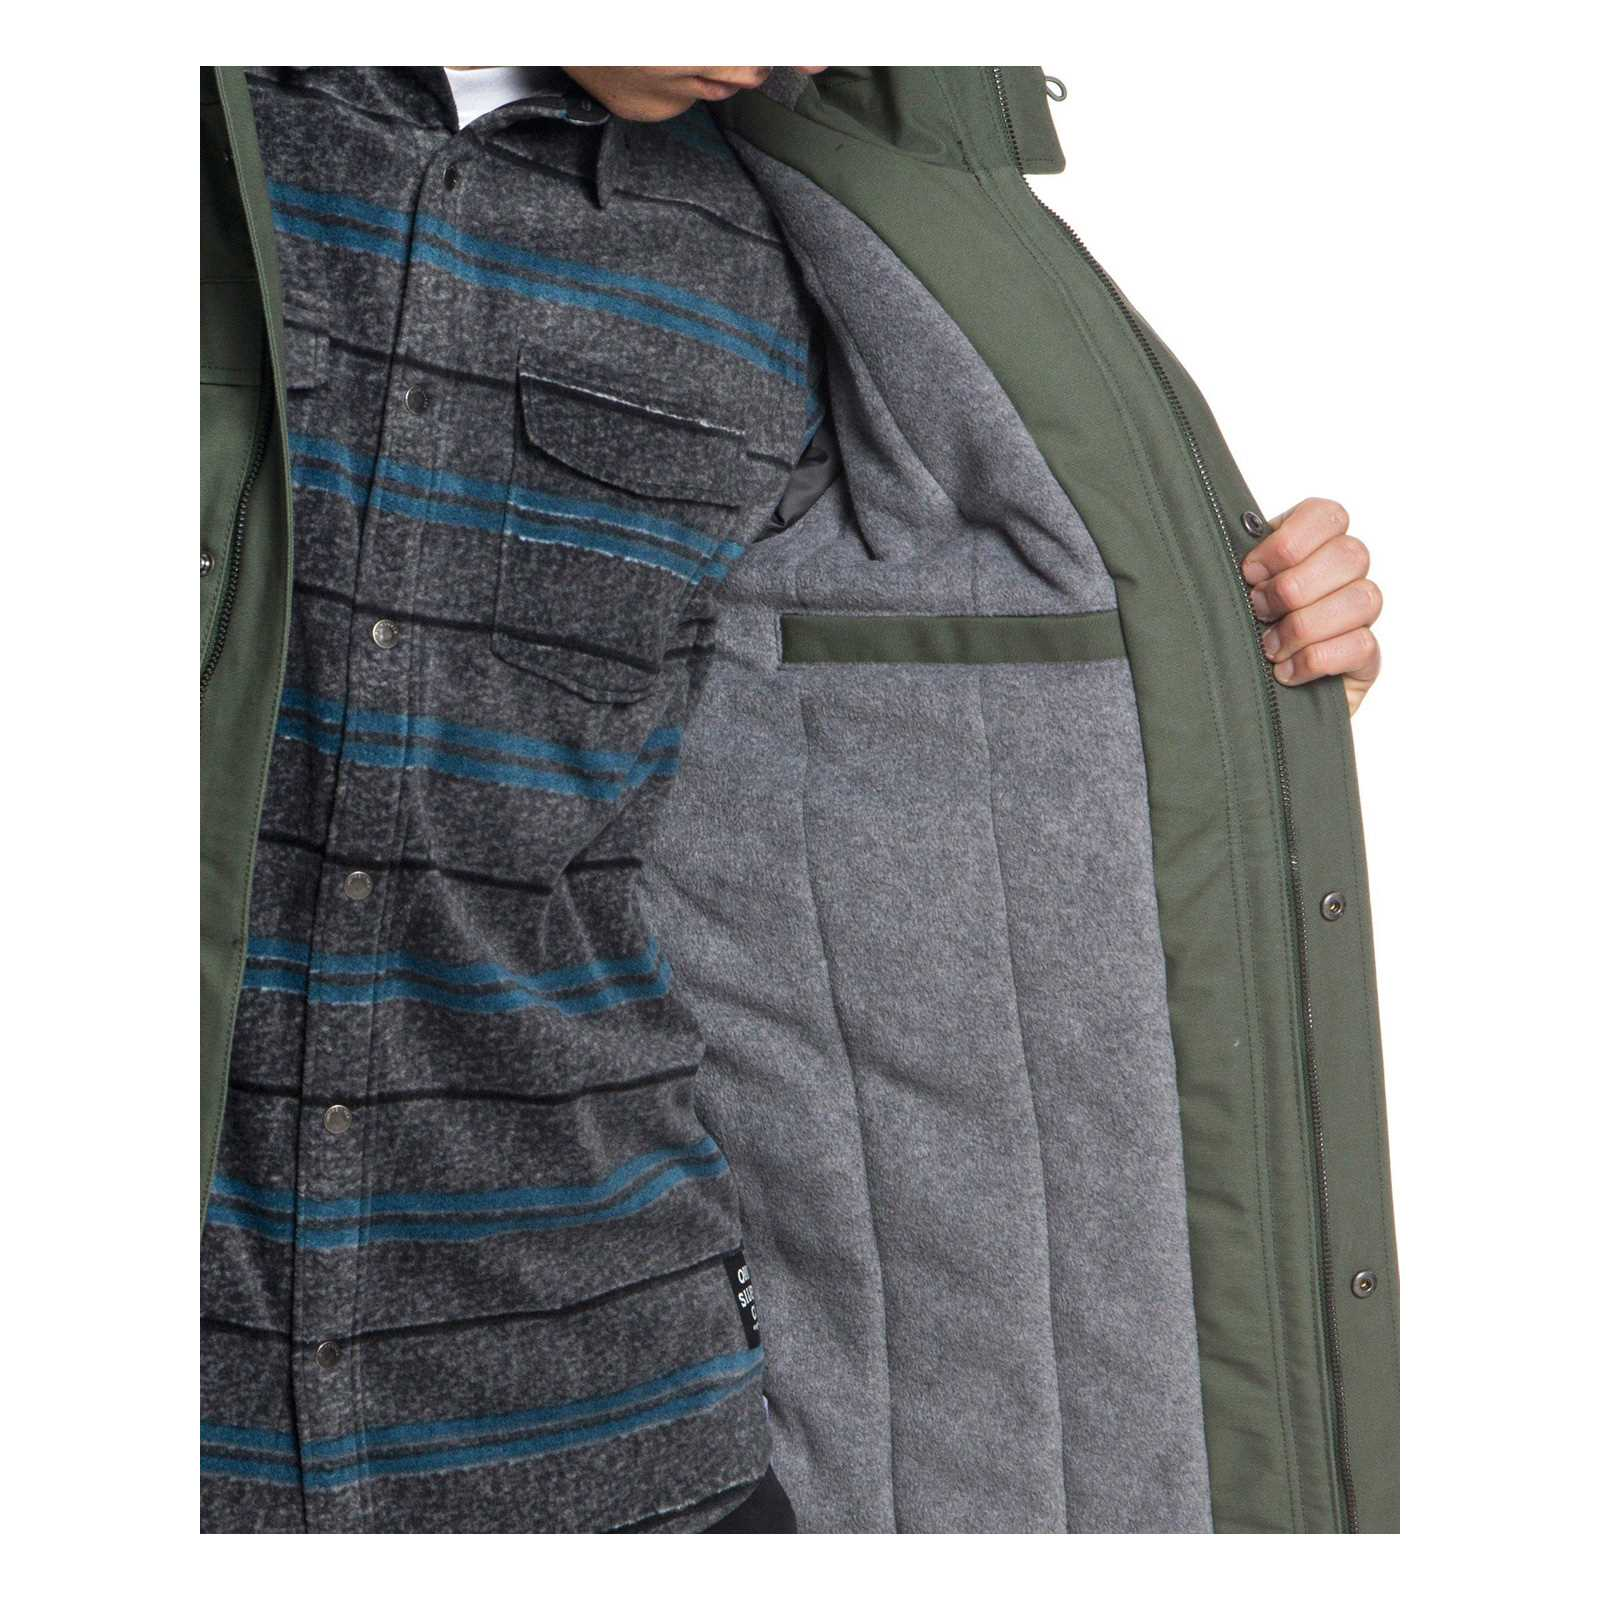 Quiksilver Army StormParka Homme StormParka Army StormParka V Quiksilver Quiksilver Homme Army V nvwPyN0m8O